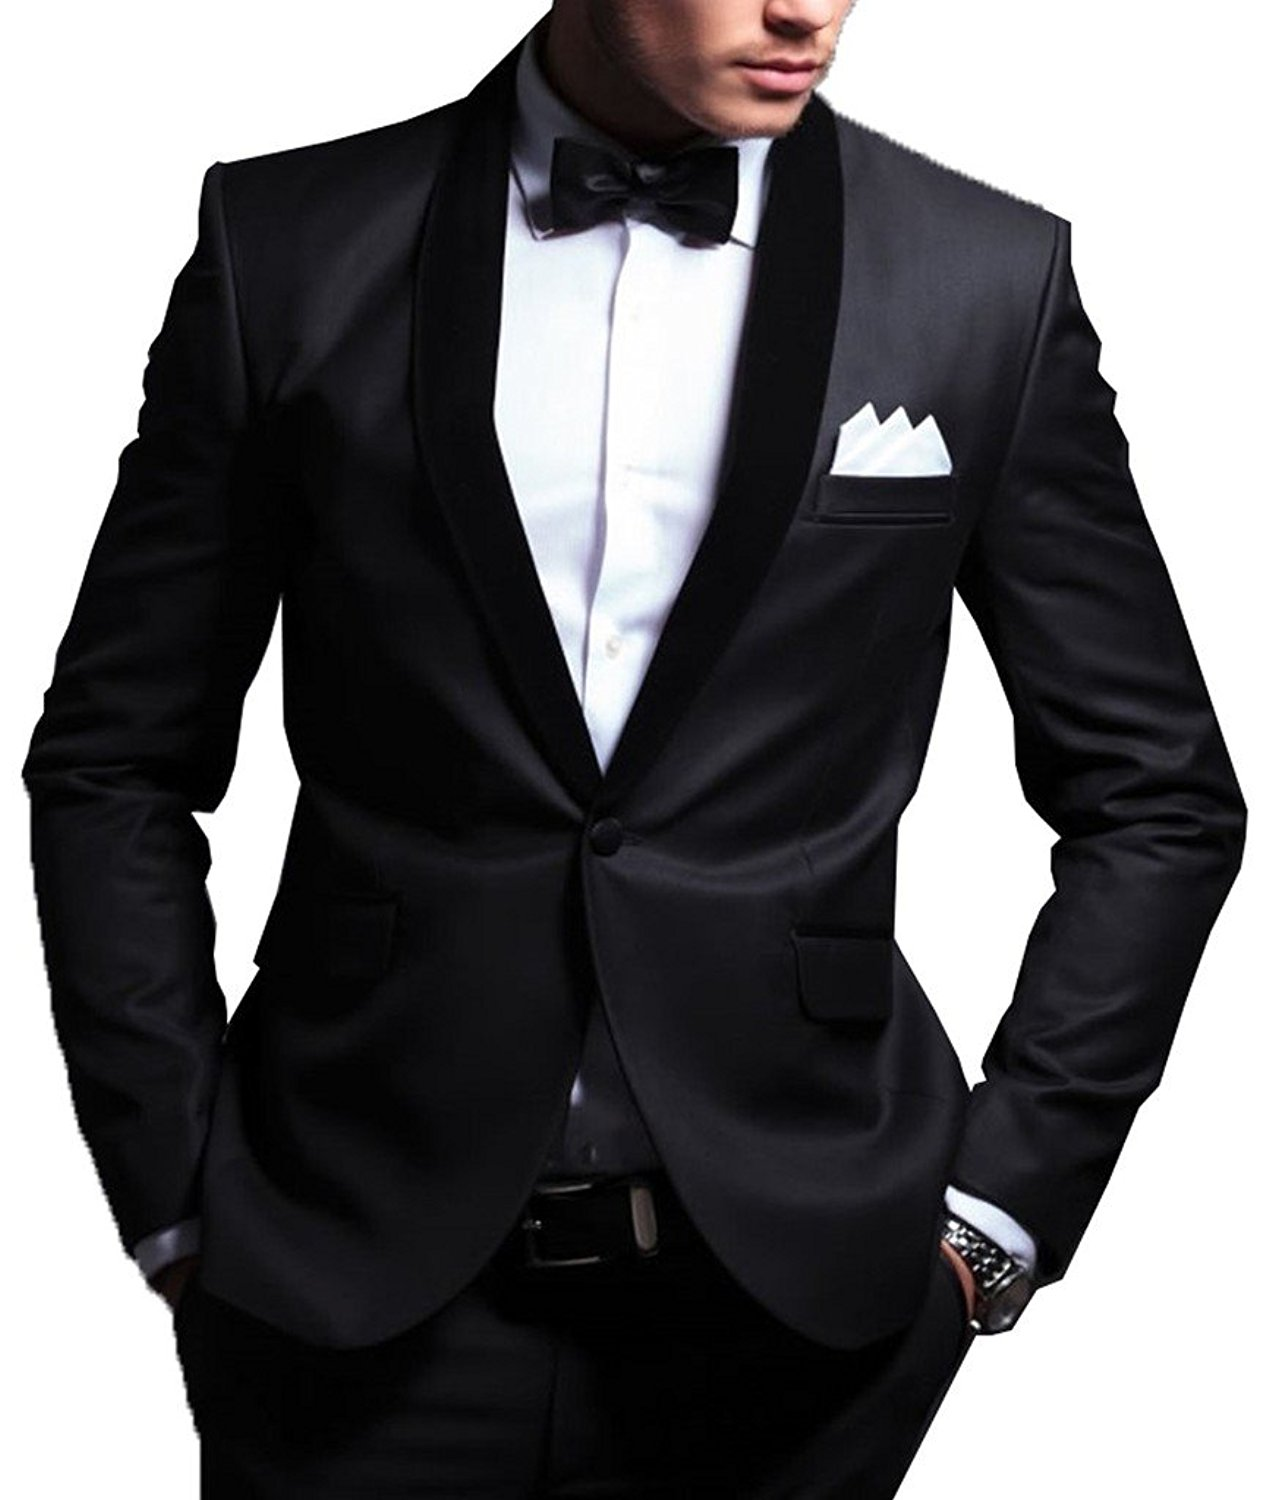 42aa9a2890c0 Get Quotations · GEORGE BRIDE Modern Fit Black Men's Suit 2pc Suit Jacket,  Suit Trousers